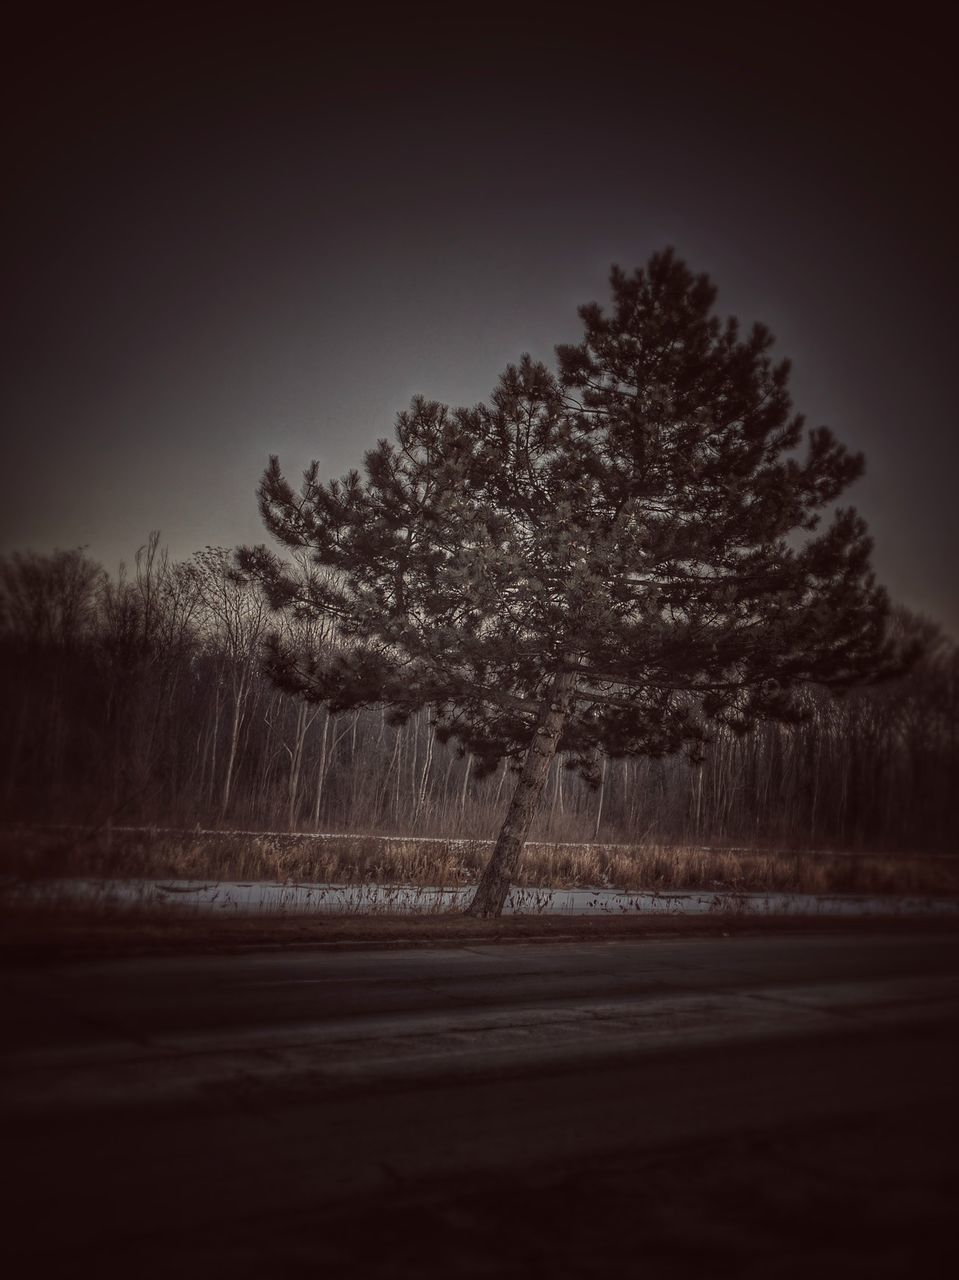 tree, nature, landscape, no people, tranquility, tranquil scene, outdoors, beauty in nature, scenics, night, winter, clear sky, sky, growth, snow